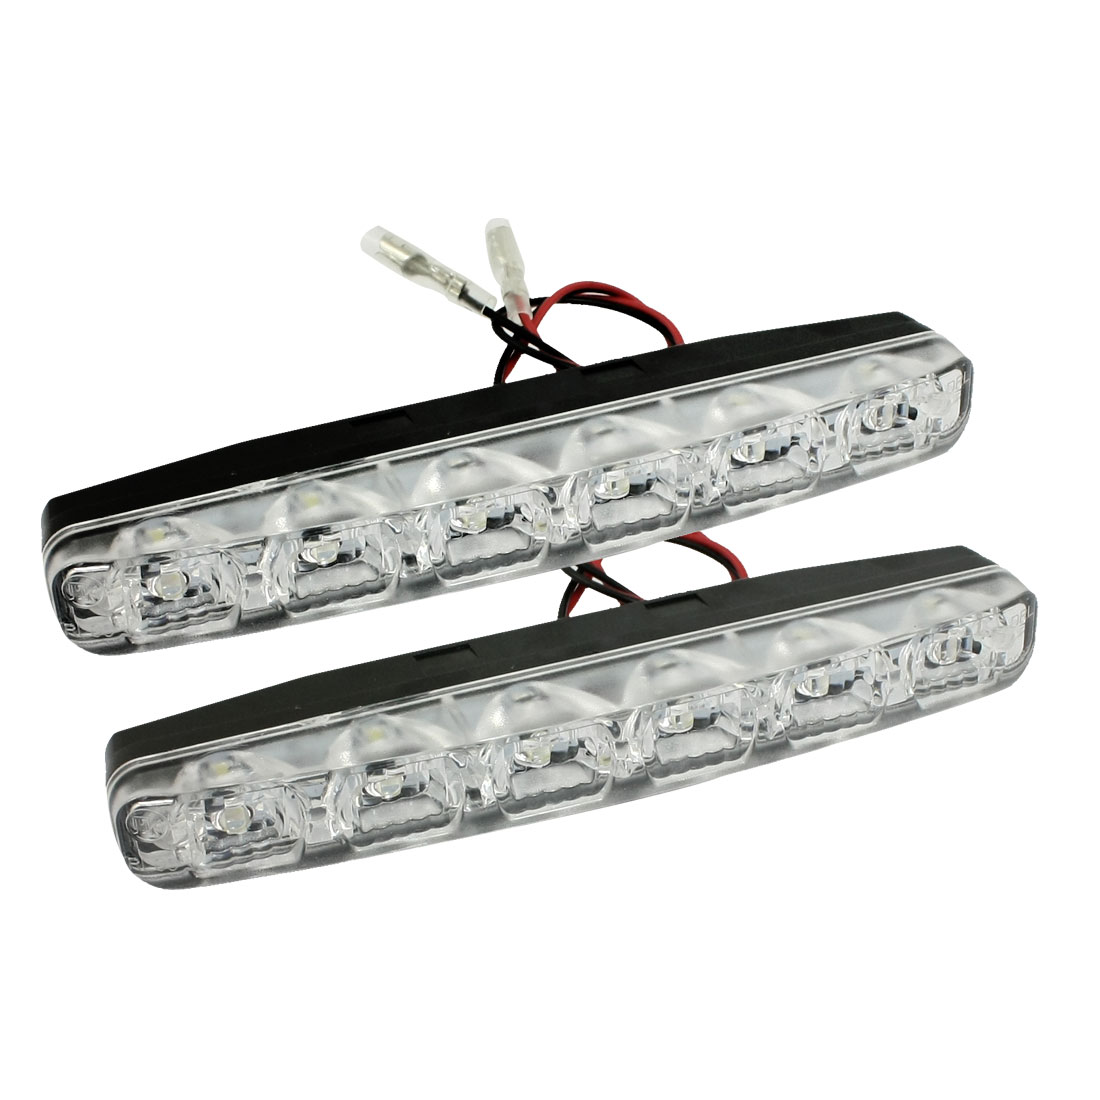 2 Pcs 6 LED White DRL Daytime Running Lamp Car Fog Light Headlamp Wire